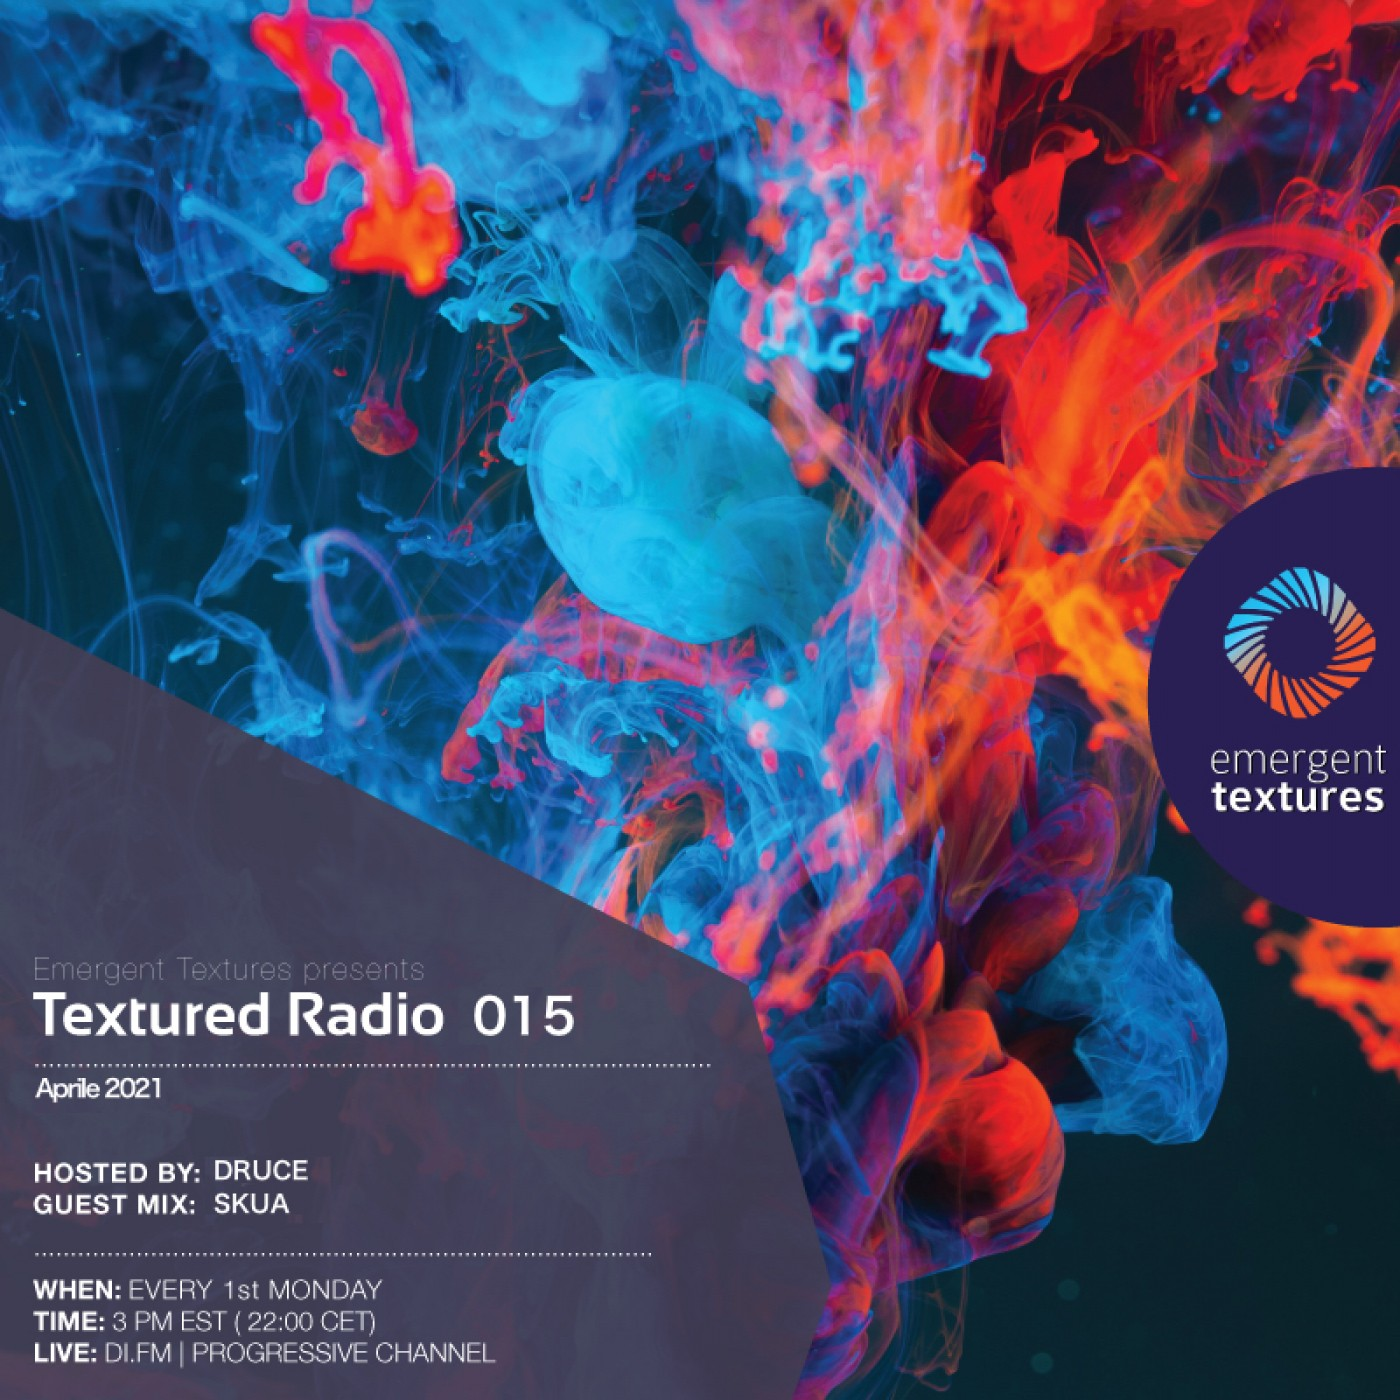 Textured Radio #015 hosted by Druce